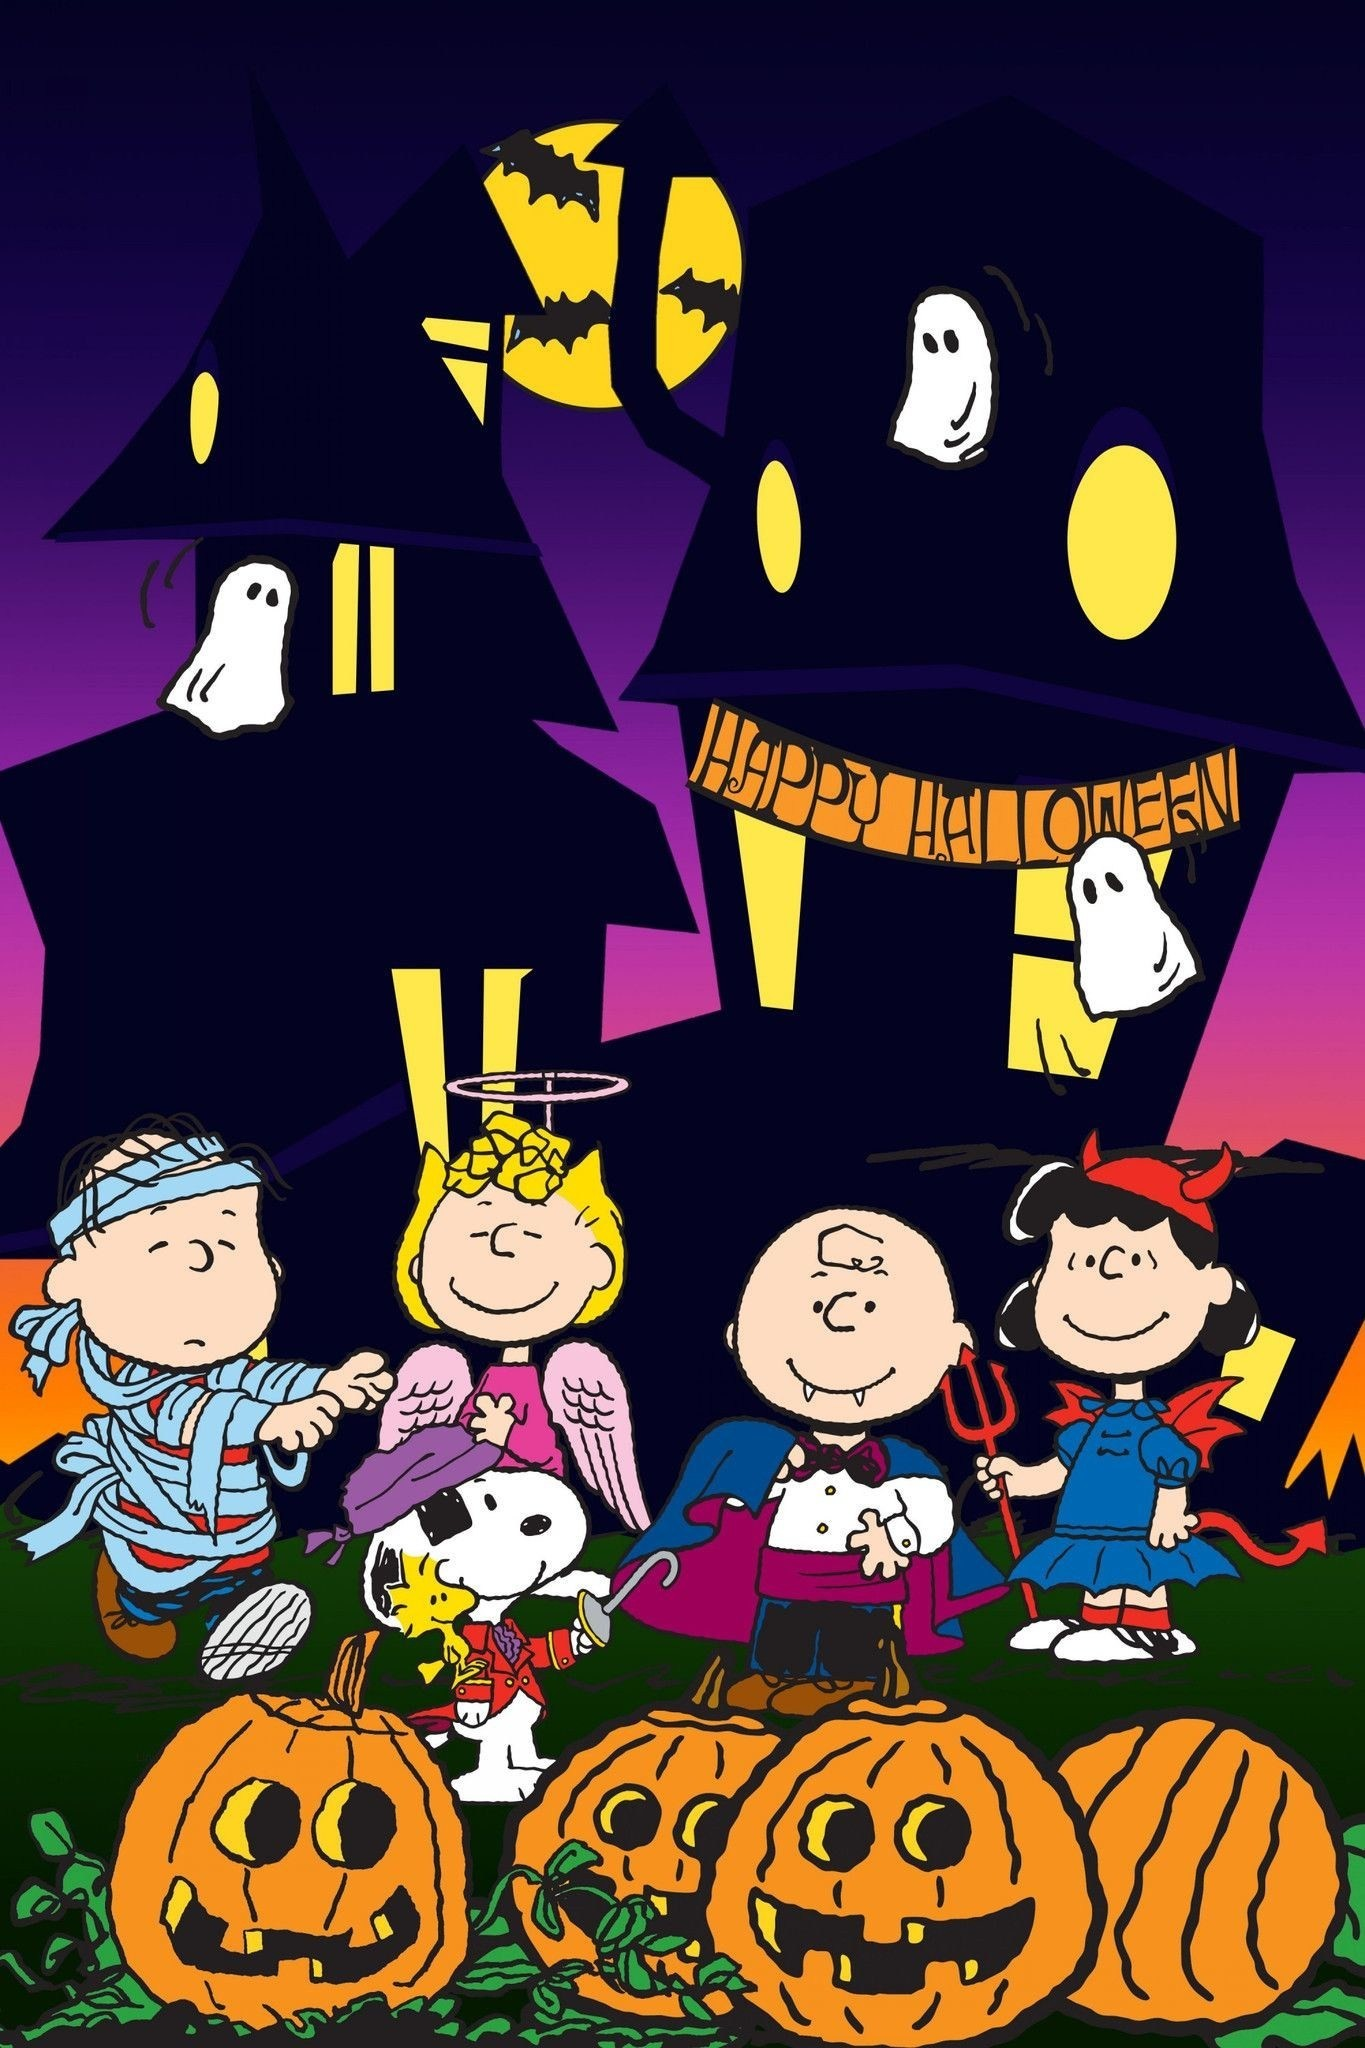 Charlie Brown Halloween Wallpaper 61 Images